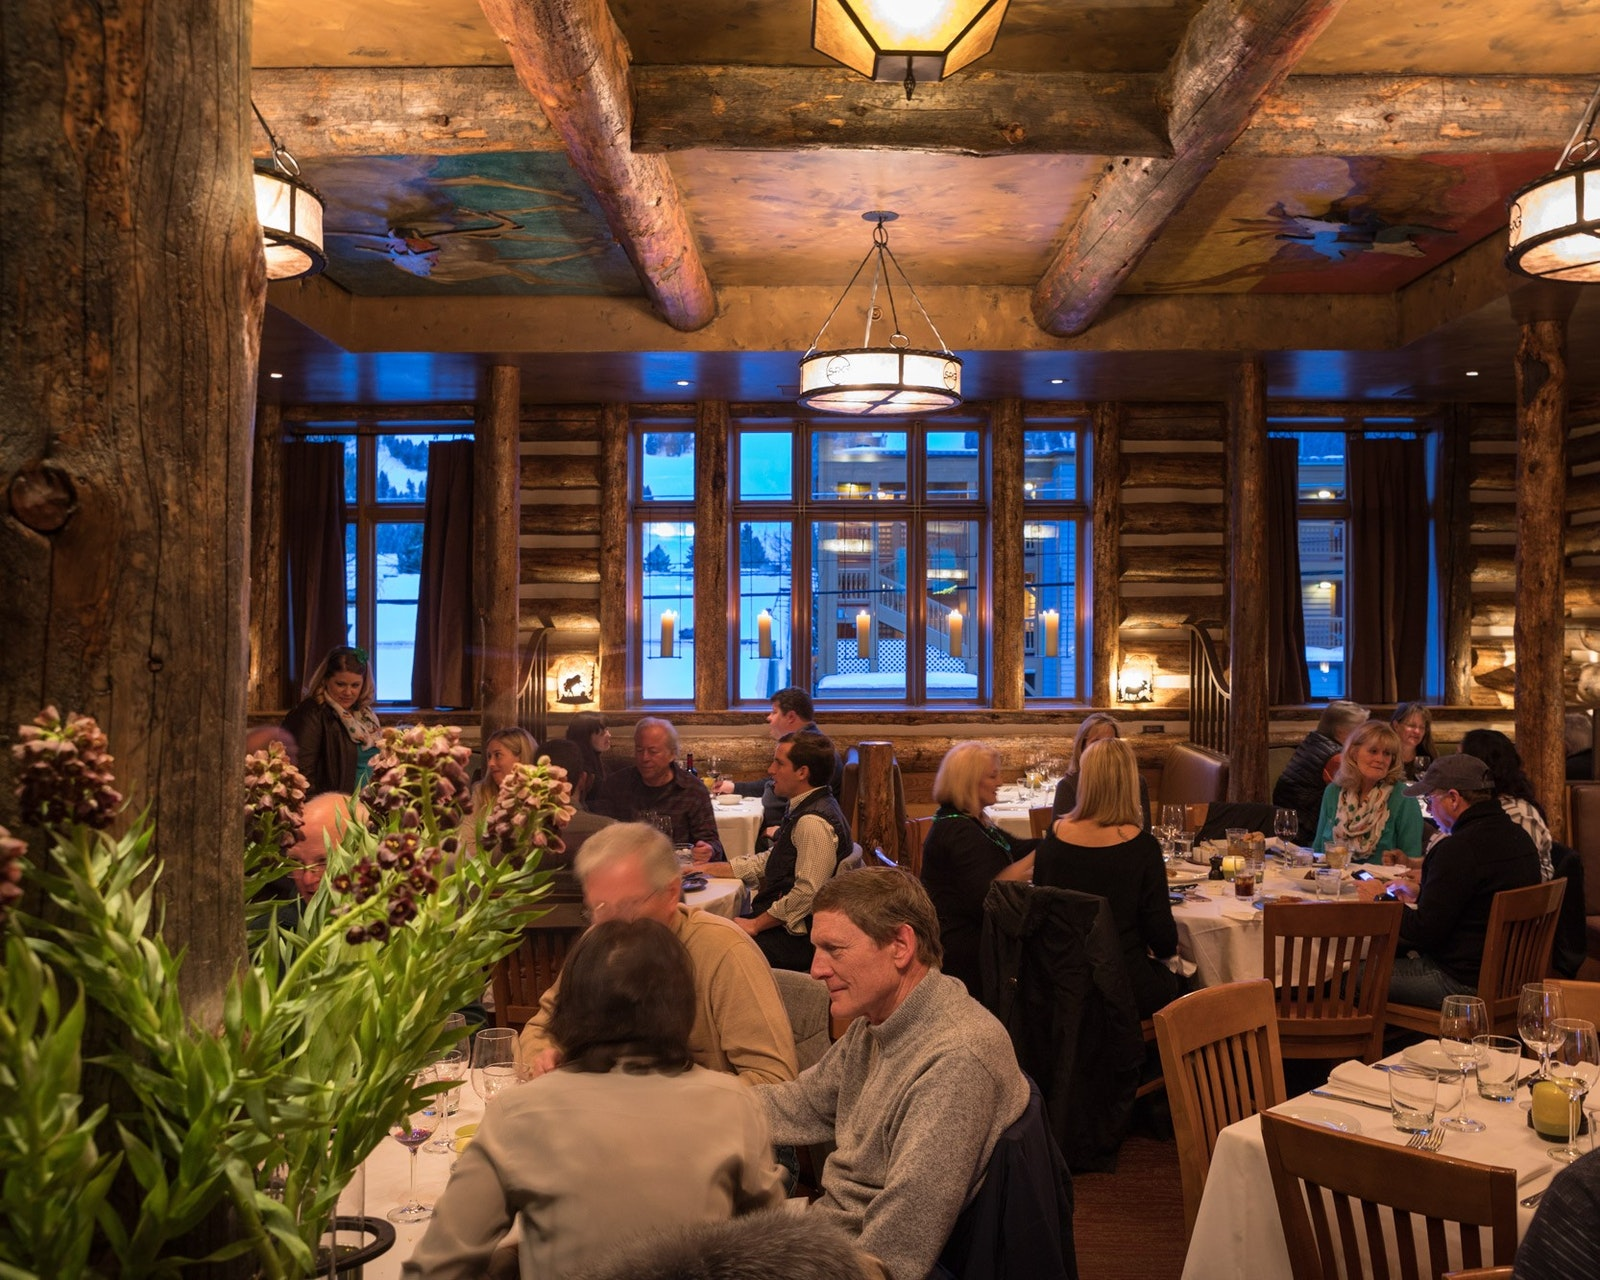 Snake River Grill's interiors